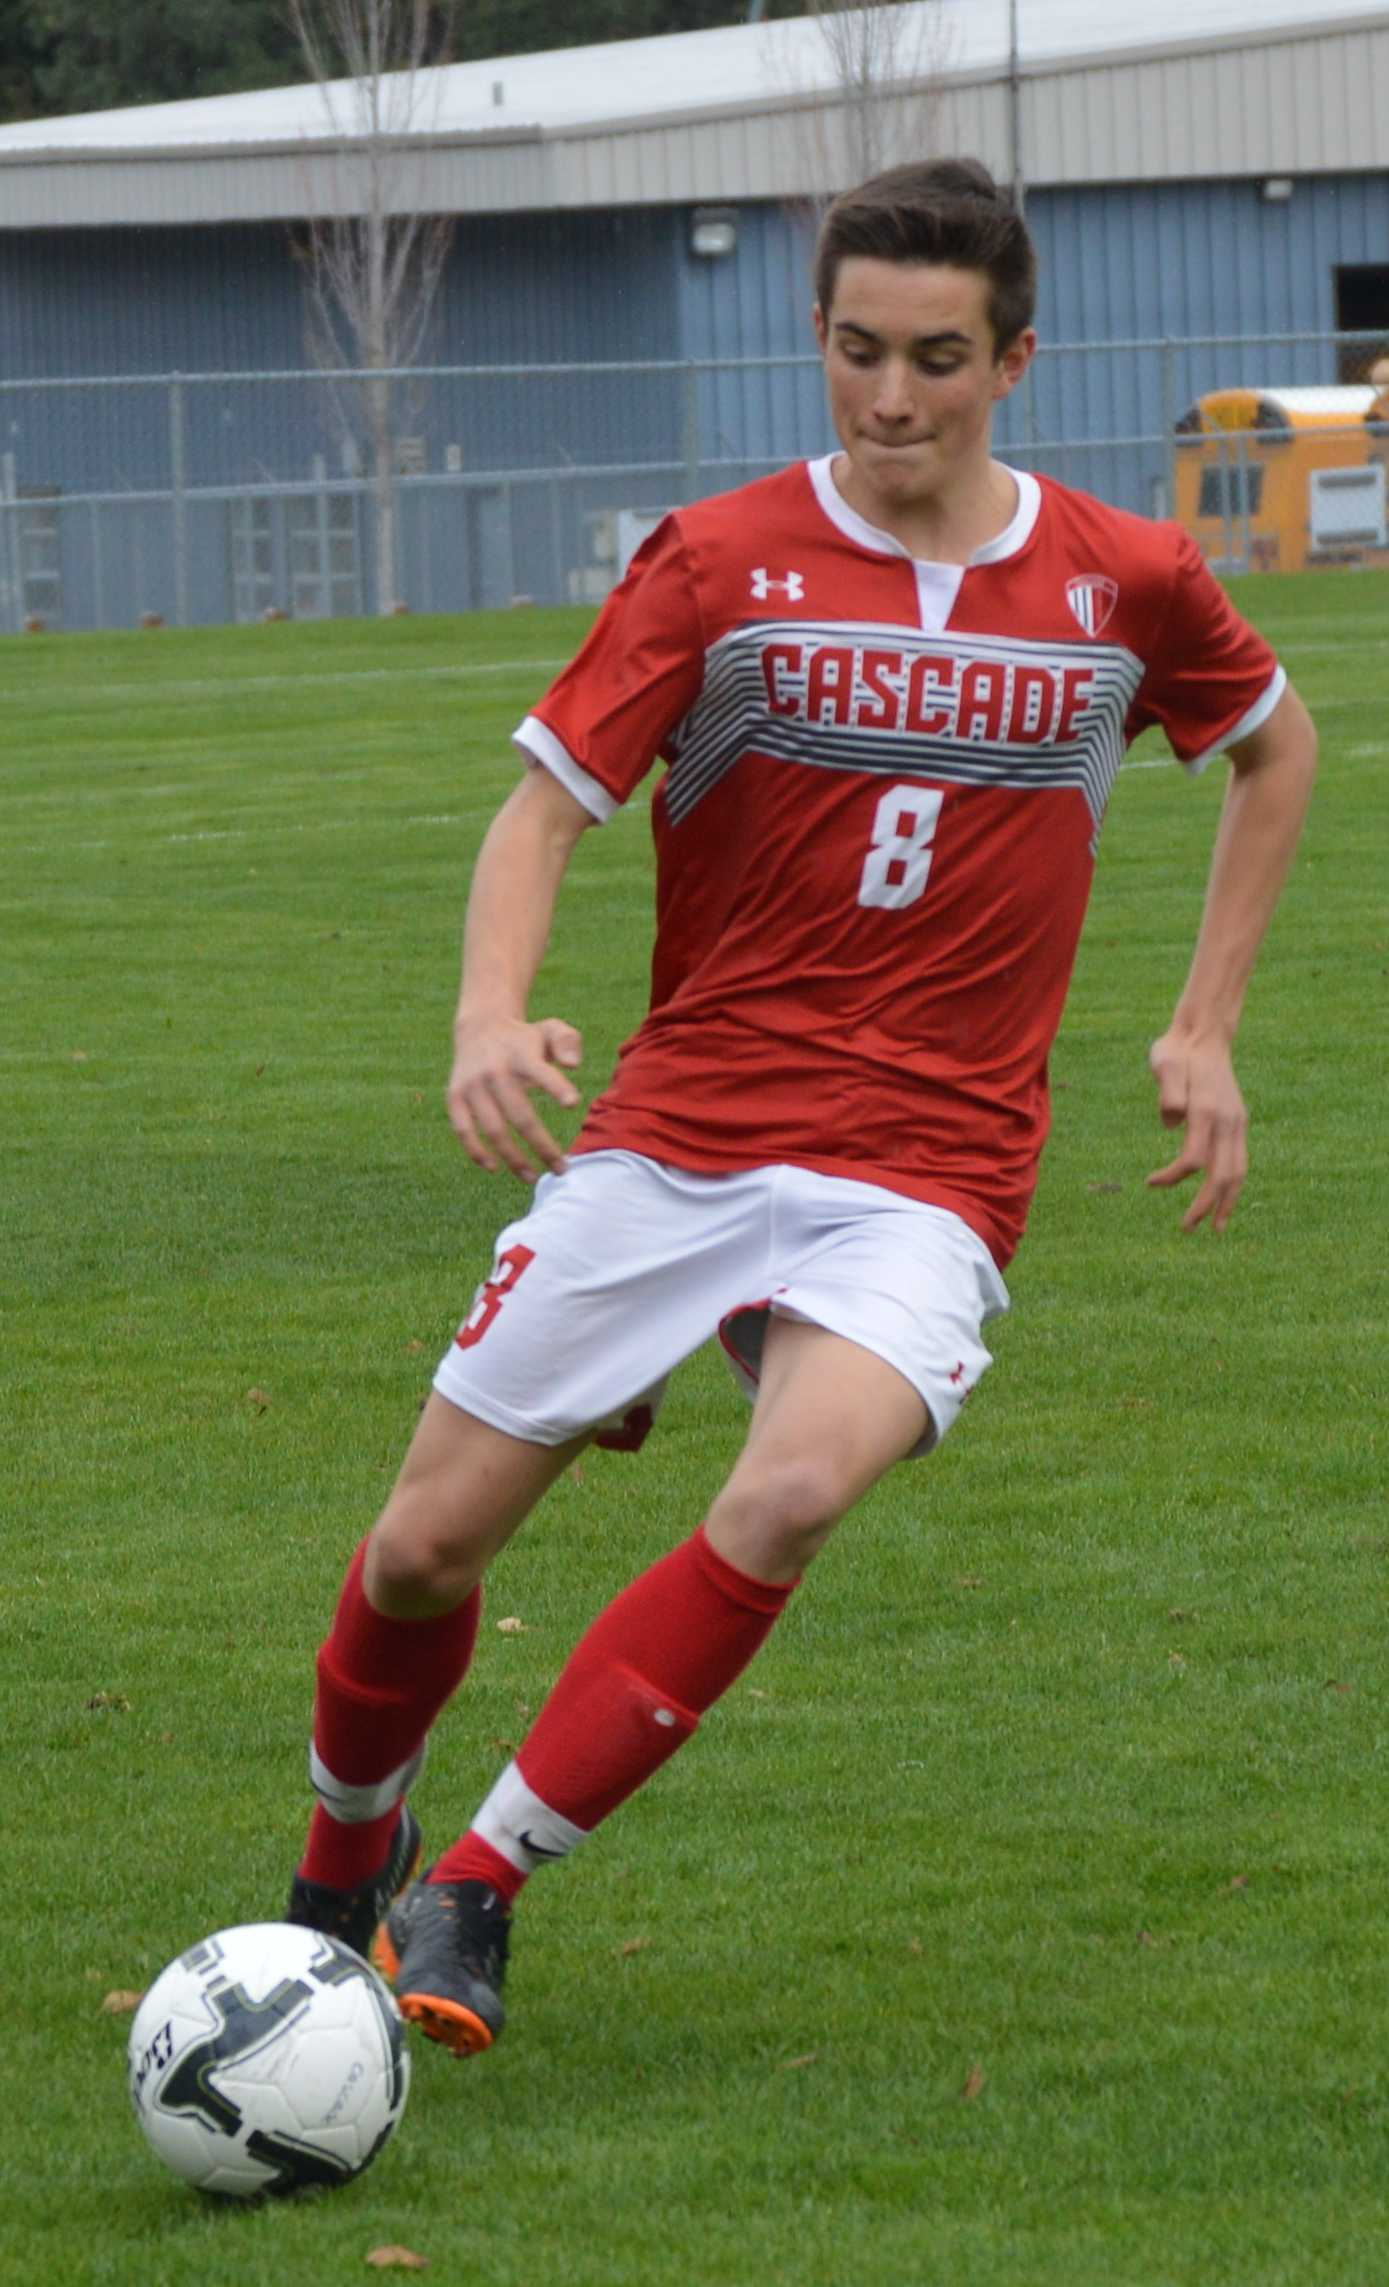 Cascade's Will Piers gets a foot on the ball.